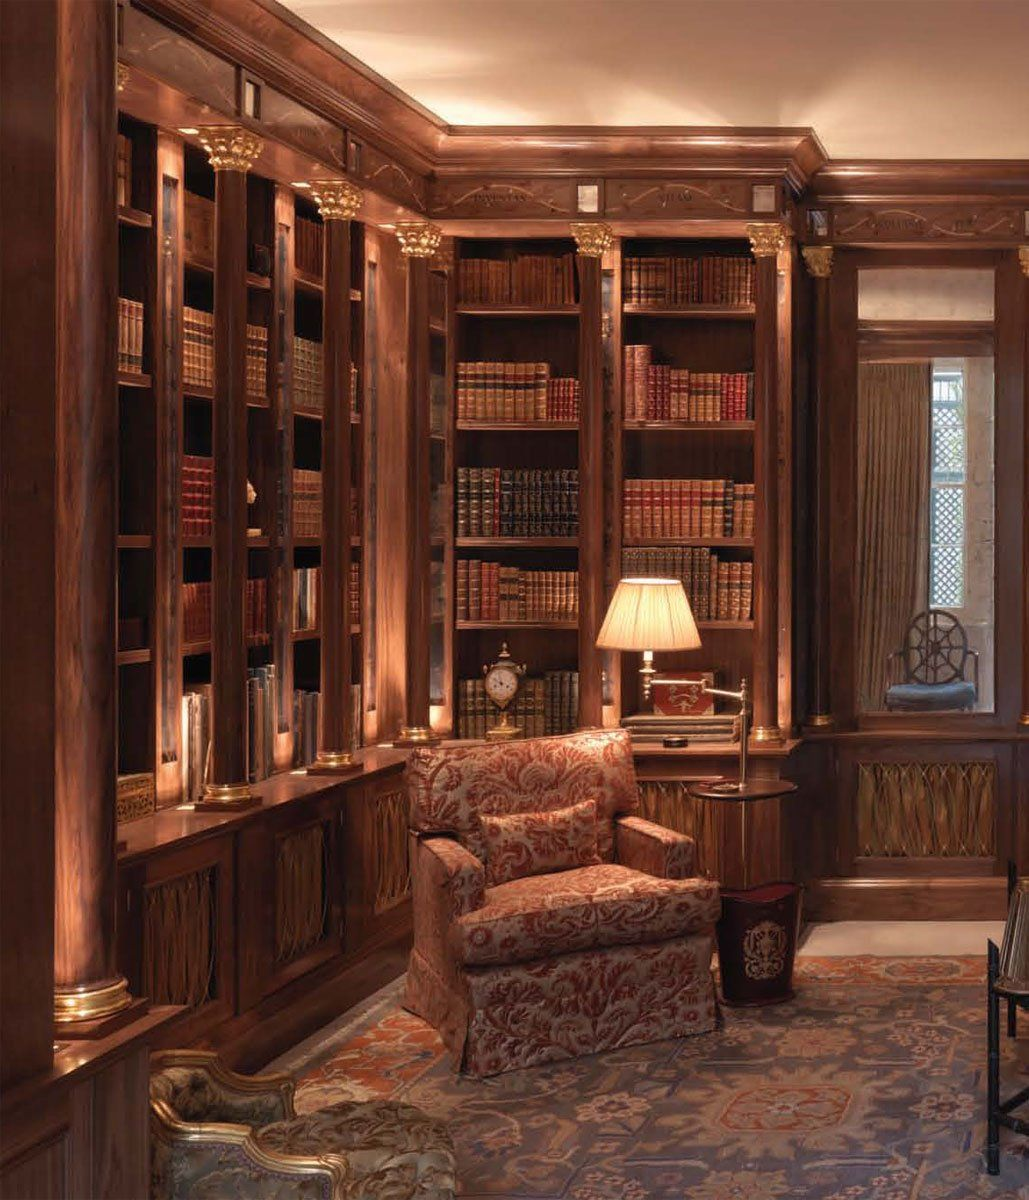 Tim gosling fitted library in sycamore luxury bespoke for Sycamore interior designs